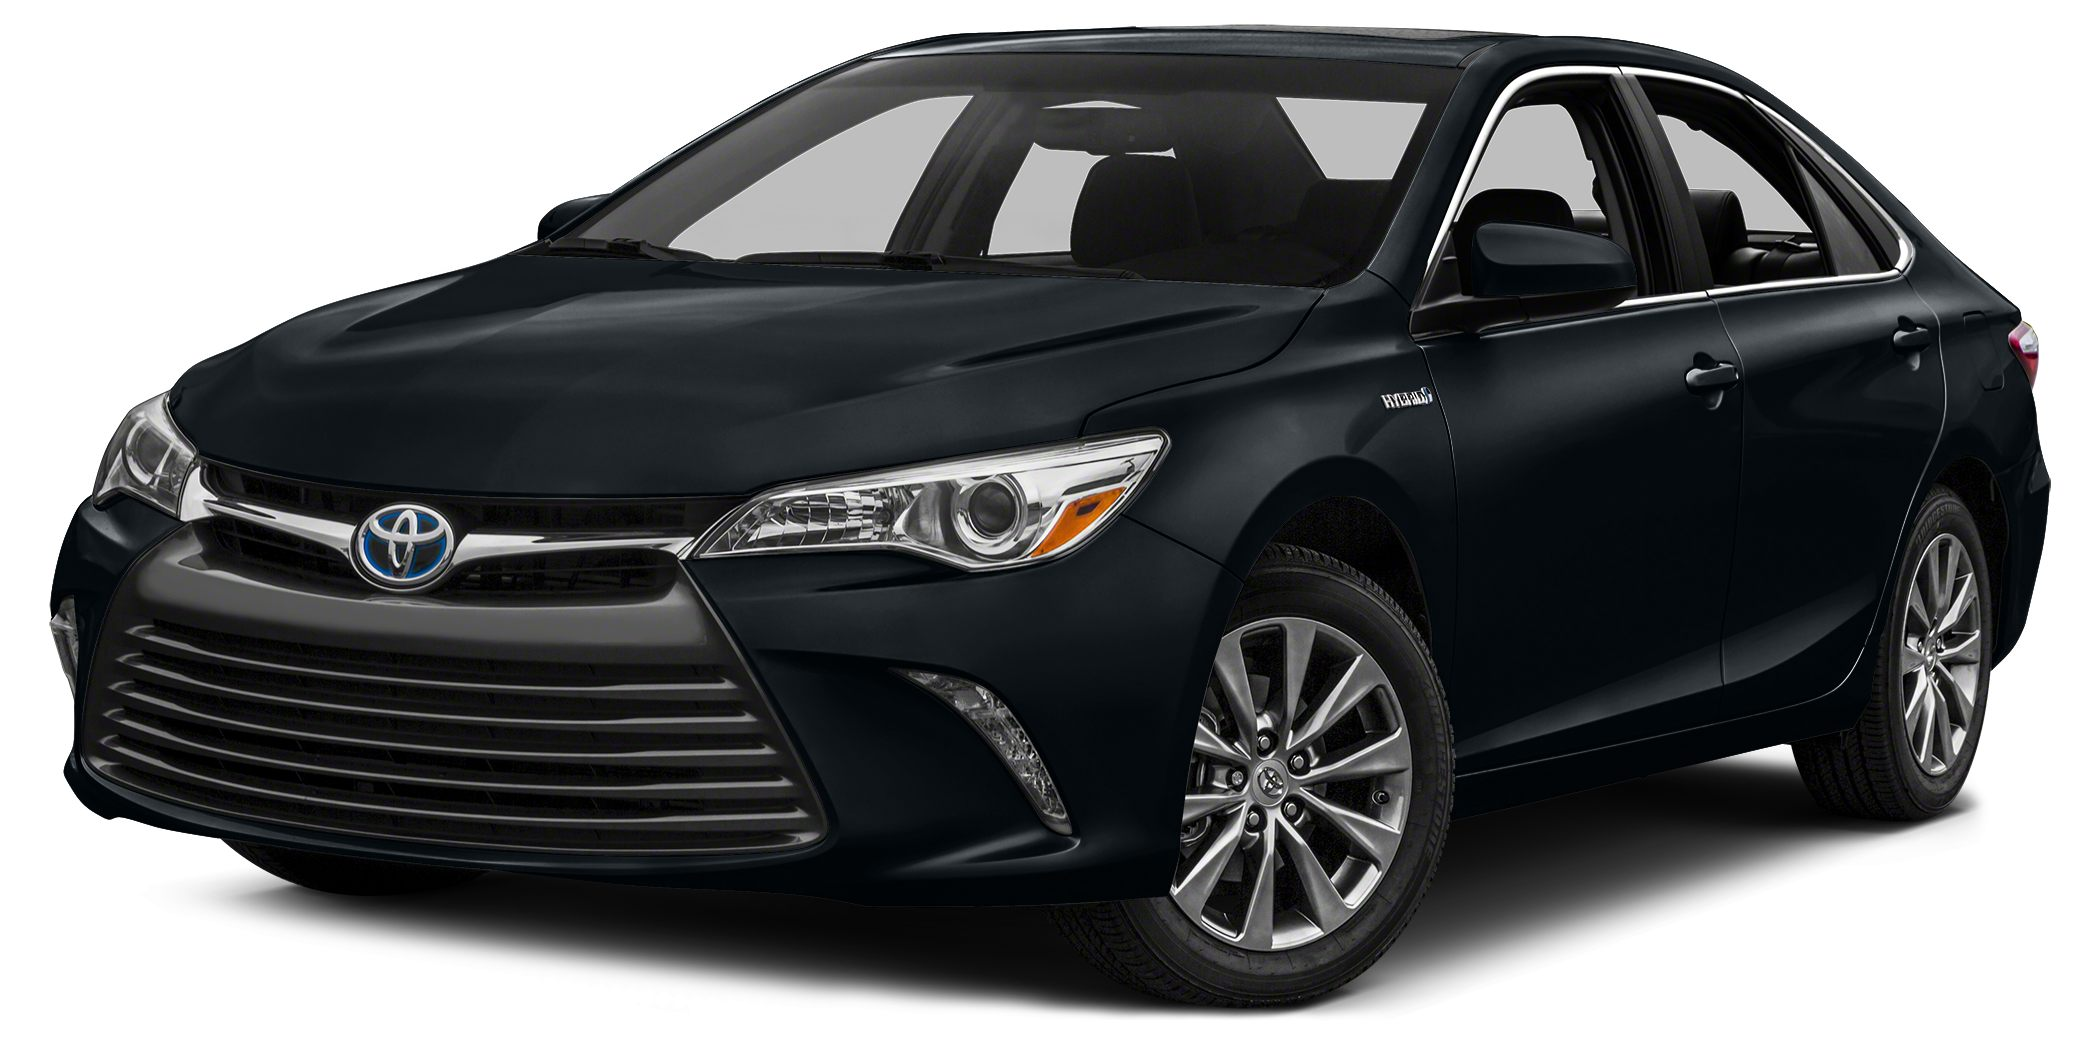 2016 Toyota Camry Hybrid LE Westboro Toyota is proud to present HASSLE FREE BUYING EXPERIENCE with